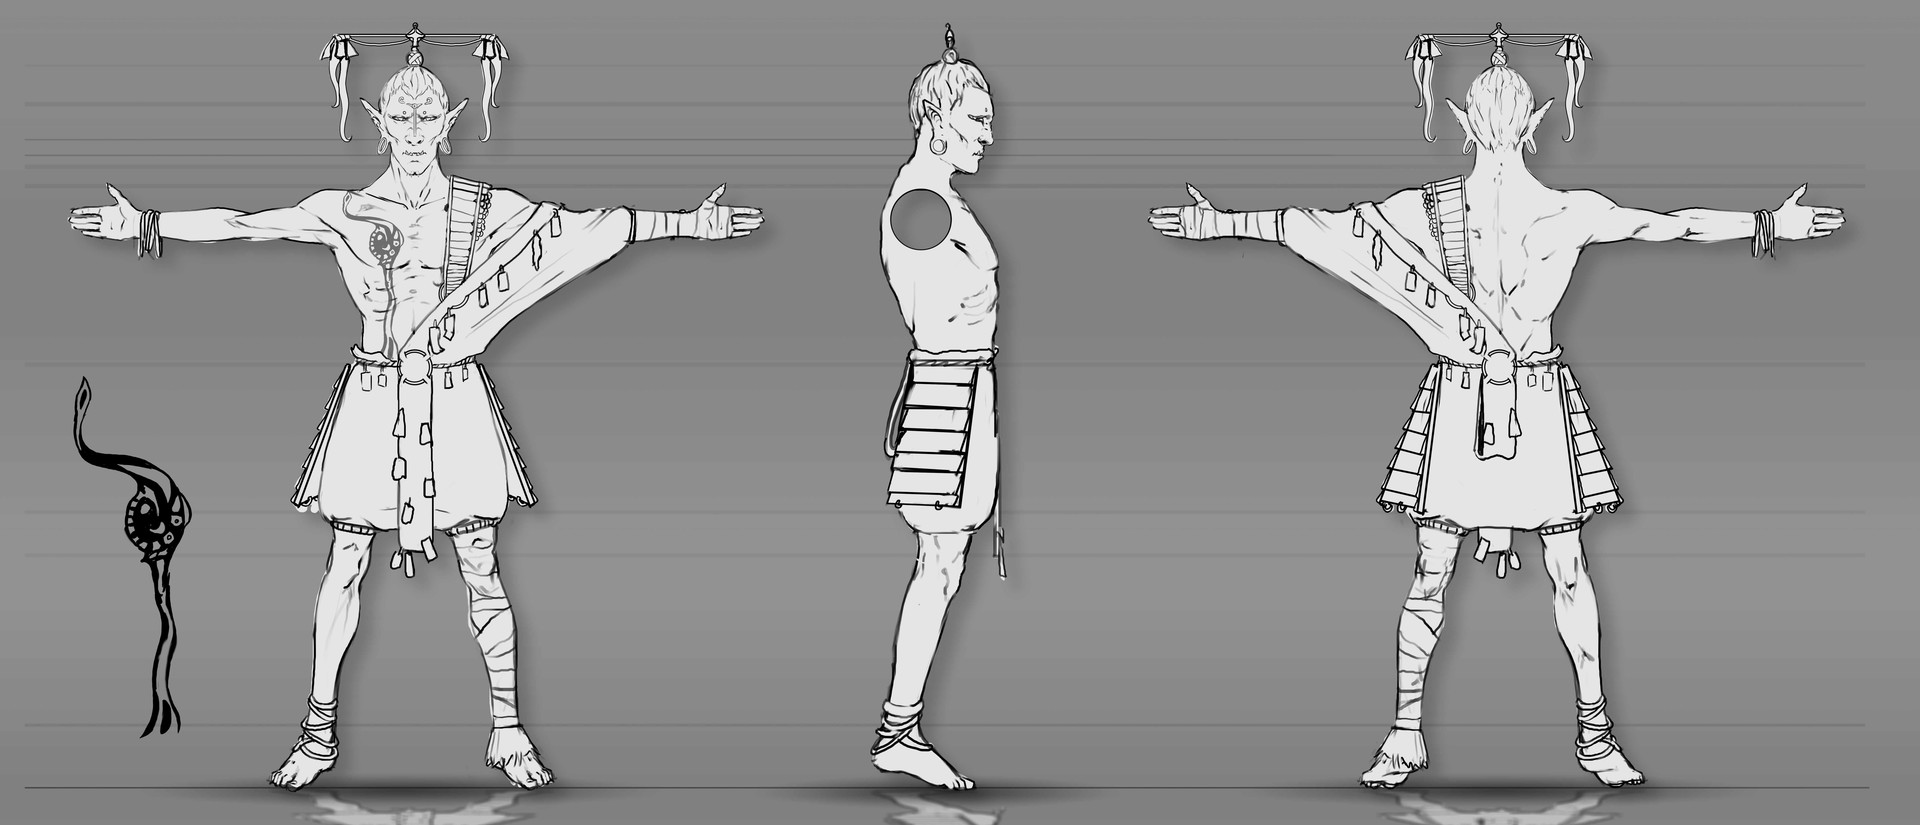 avatar character sheet adrian retana - blue warrior character sheet